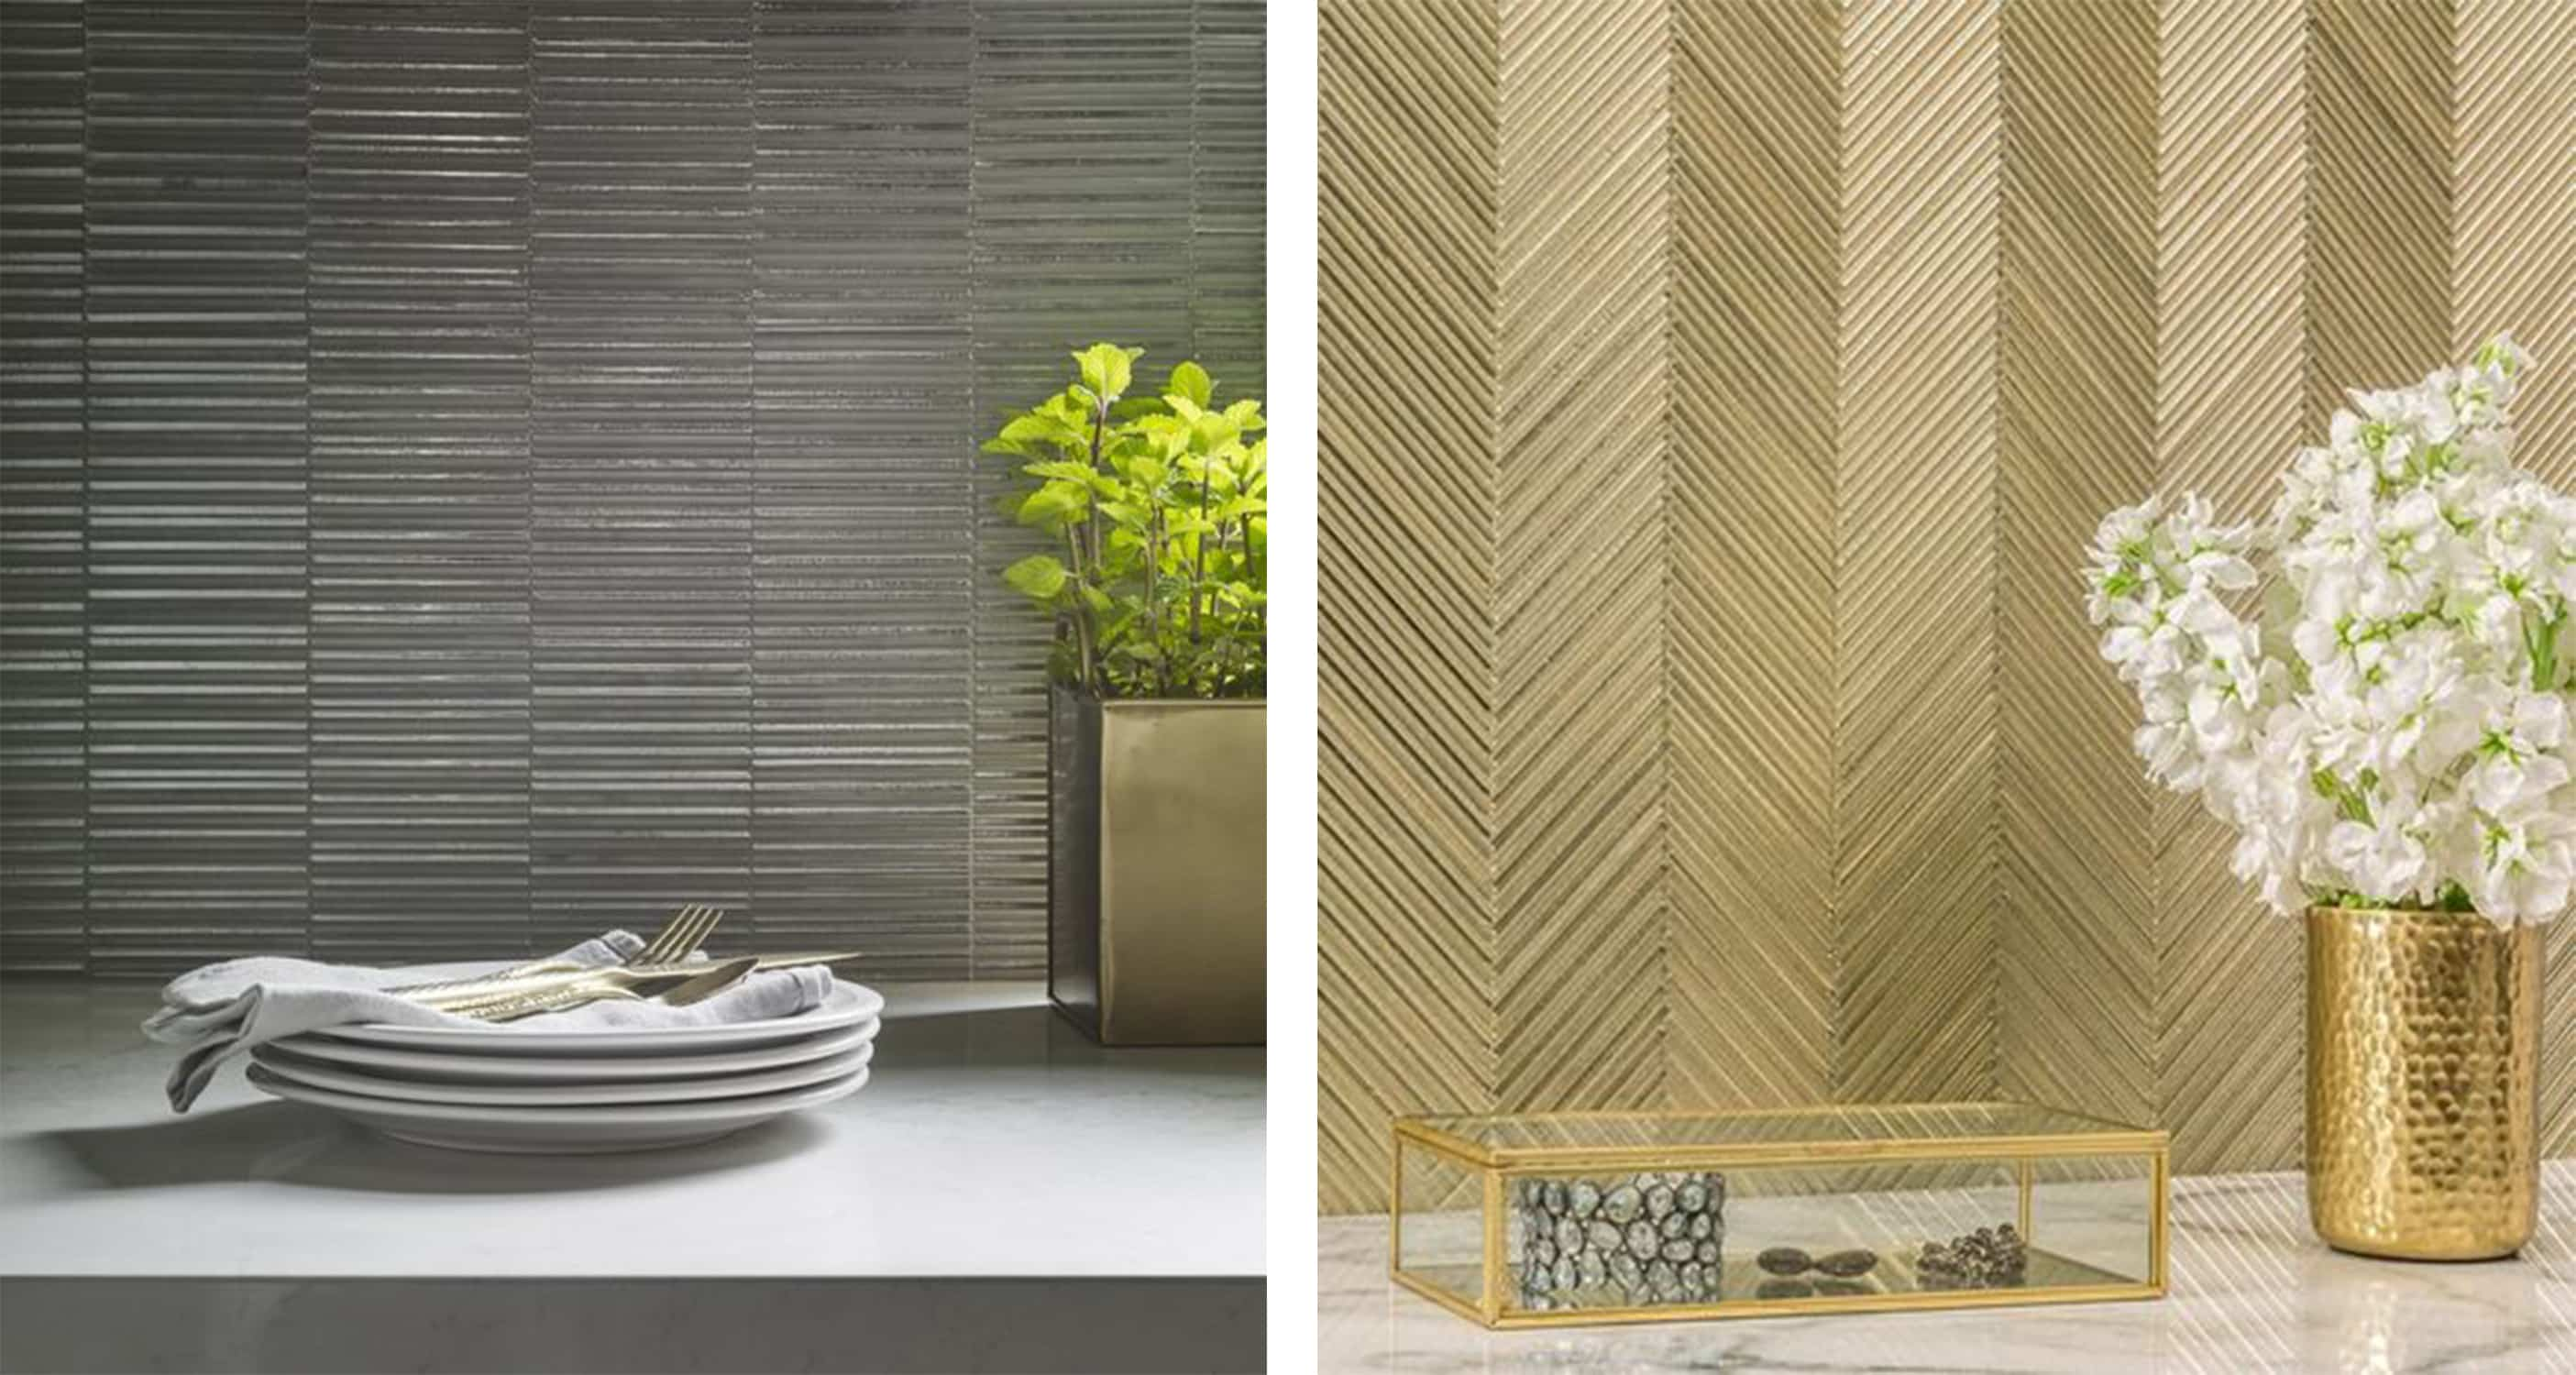 tile trend - textile glass - skinny glass tile - darci hether new york